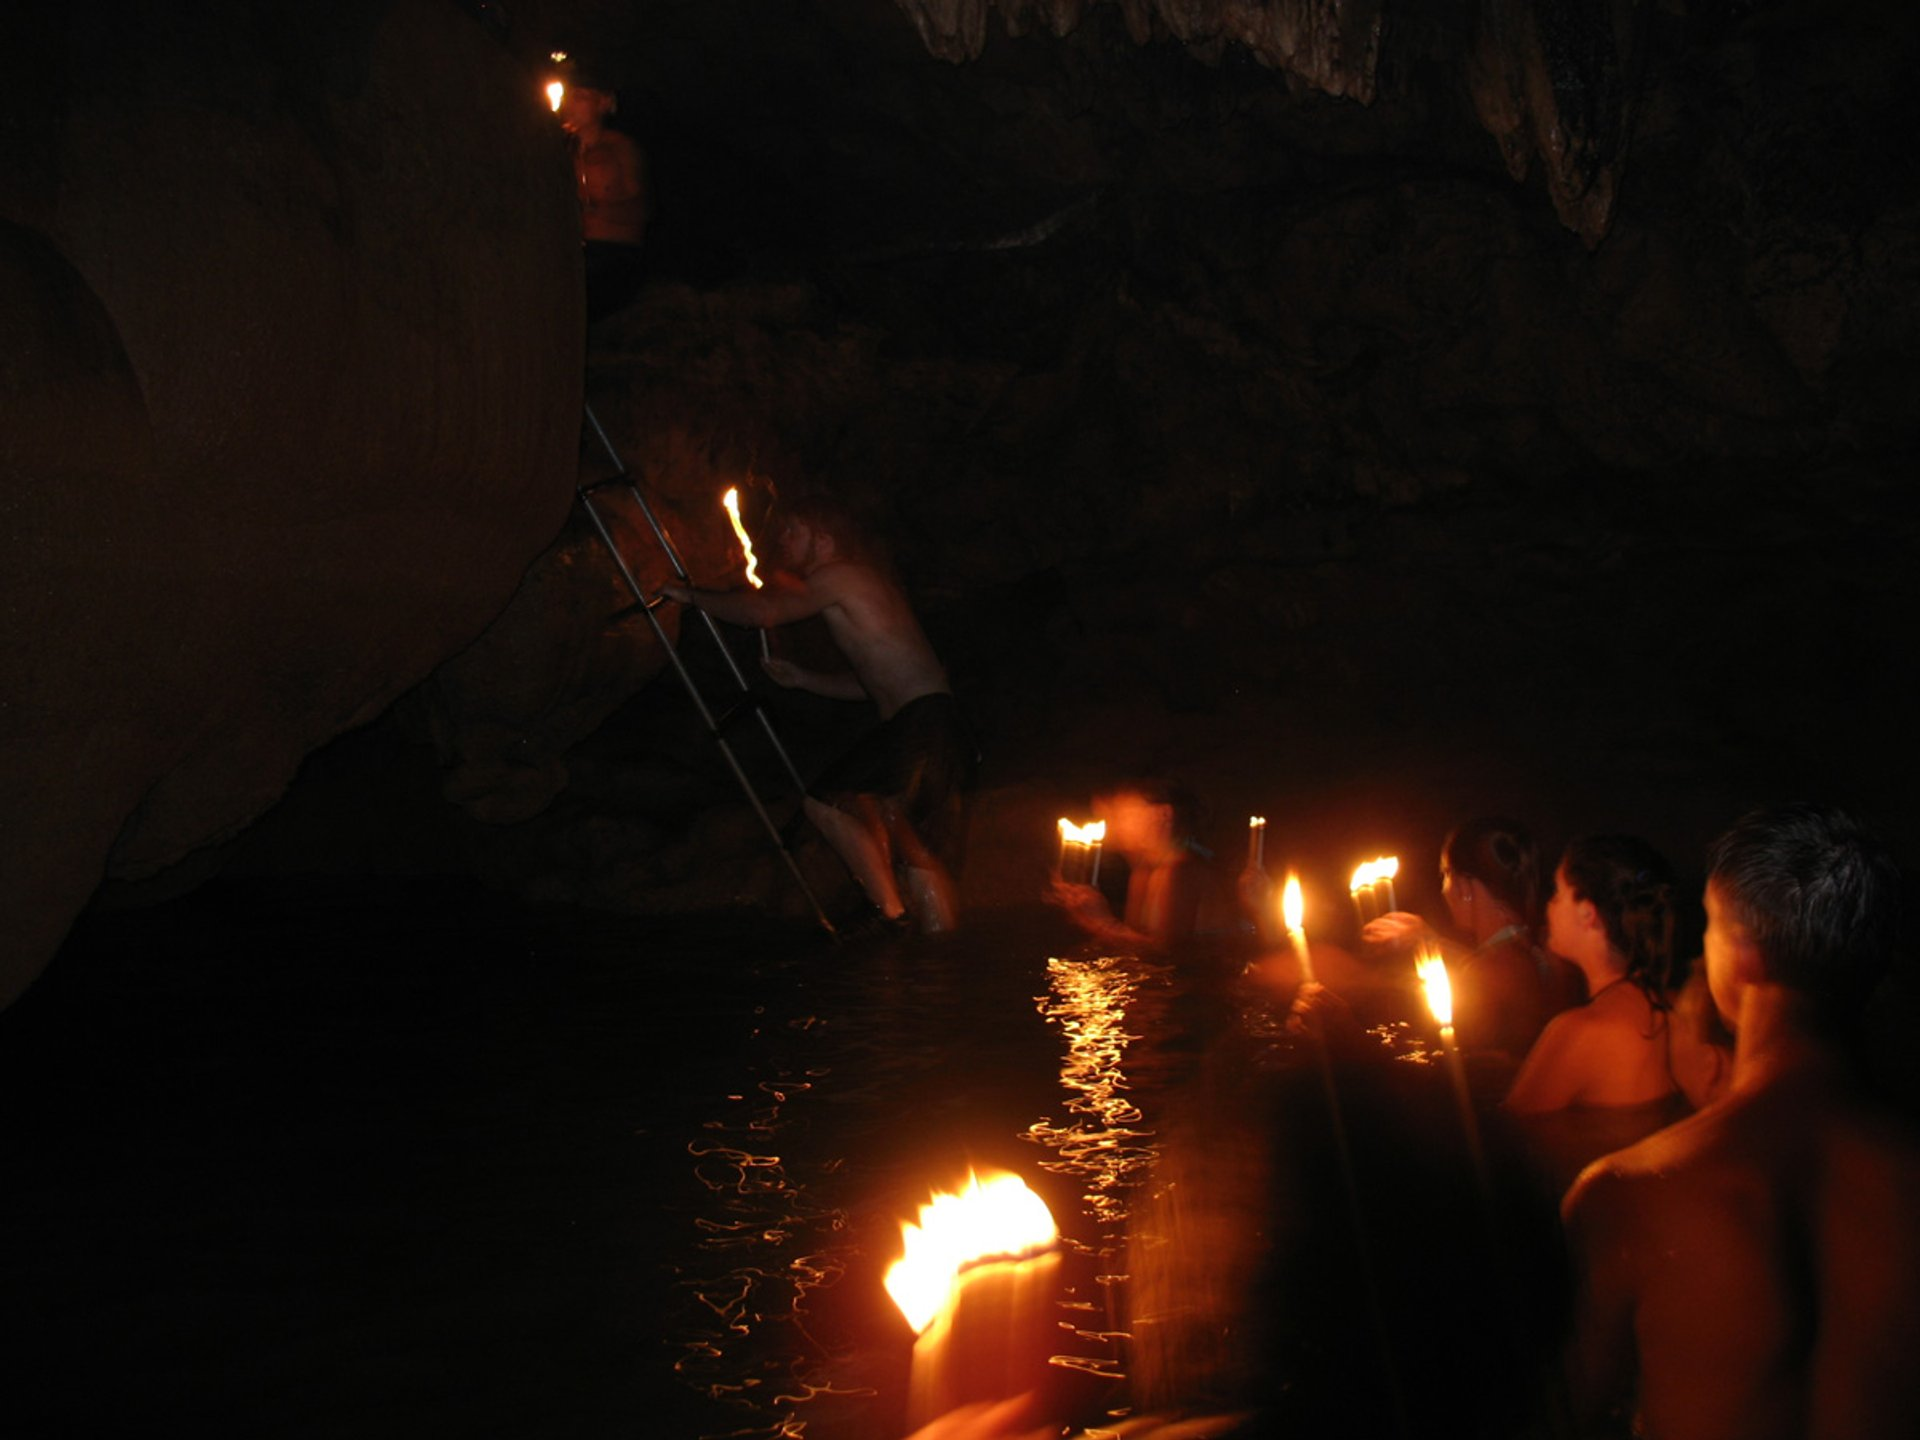 Candlelit Caving in Guatemala 2020 - Best Time